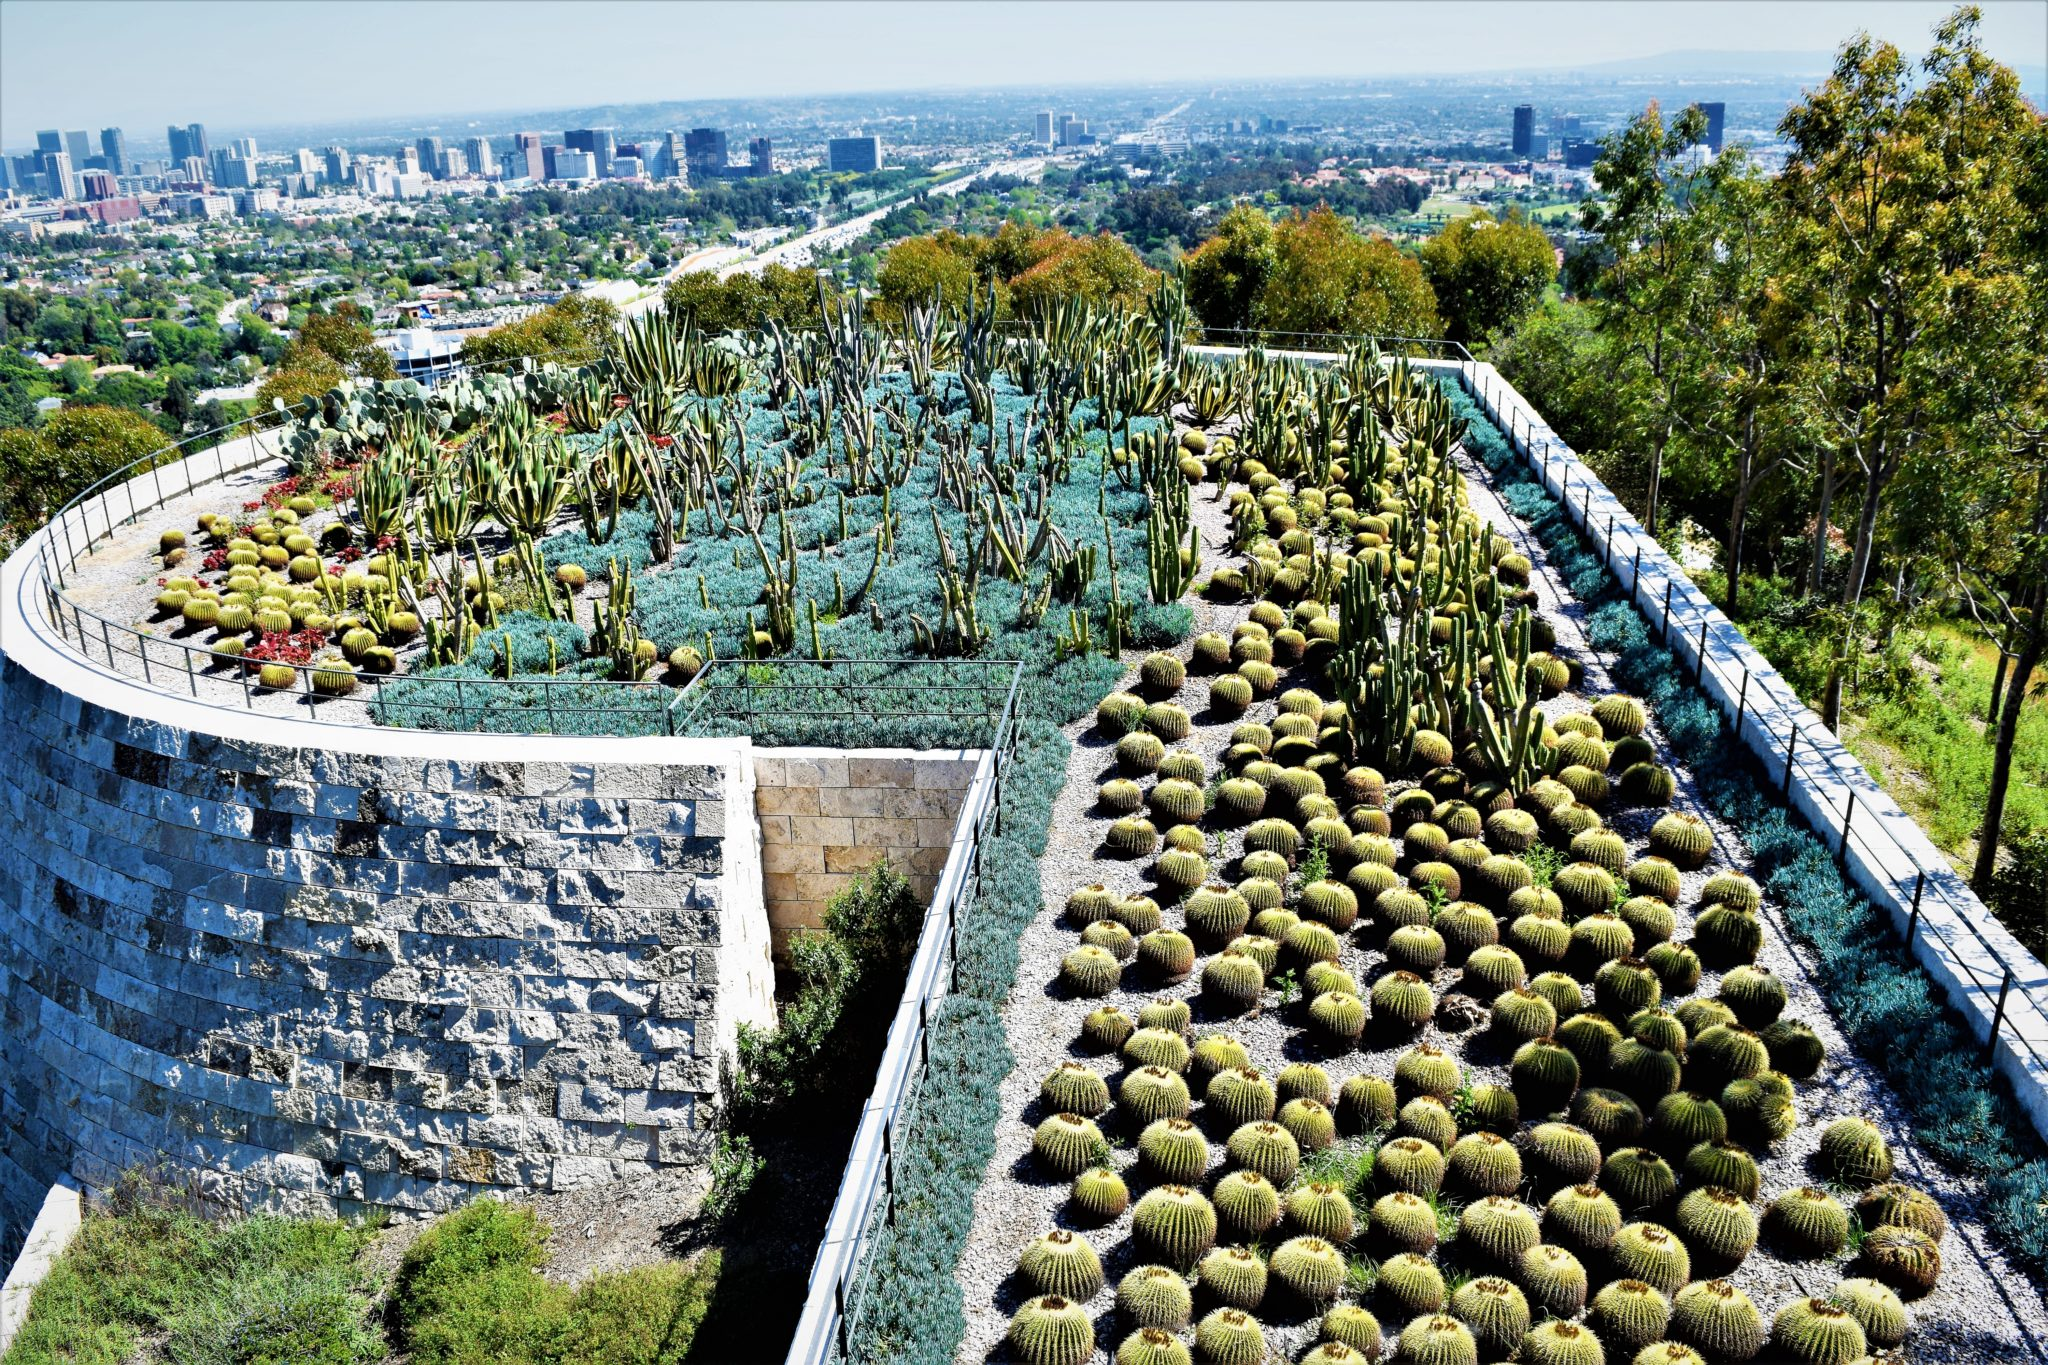 Getty Center cactus and plants, los angeles